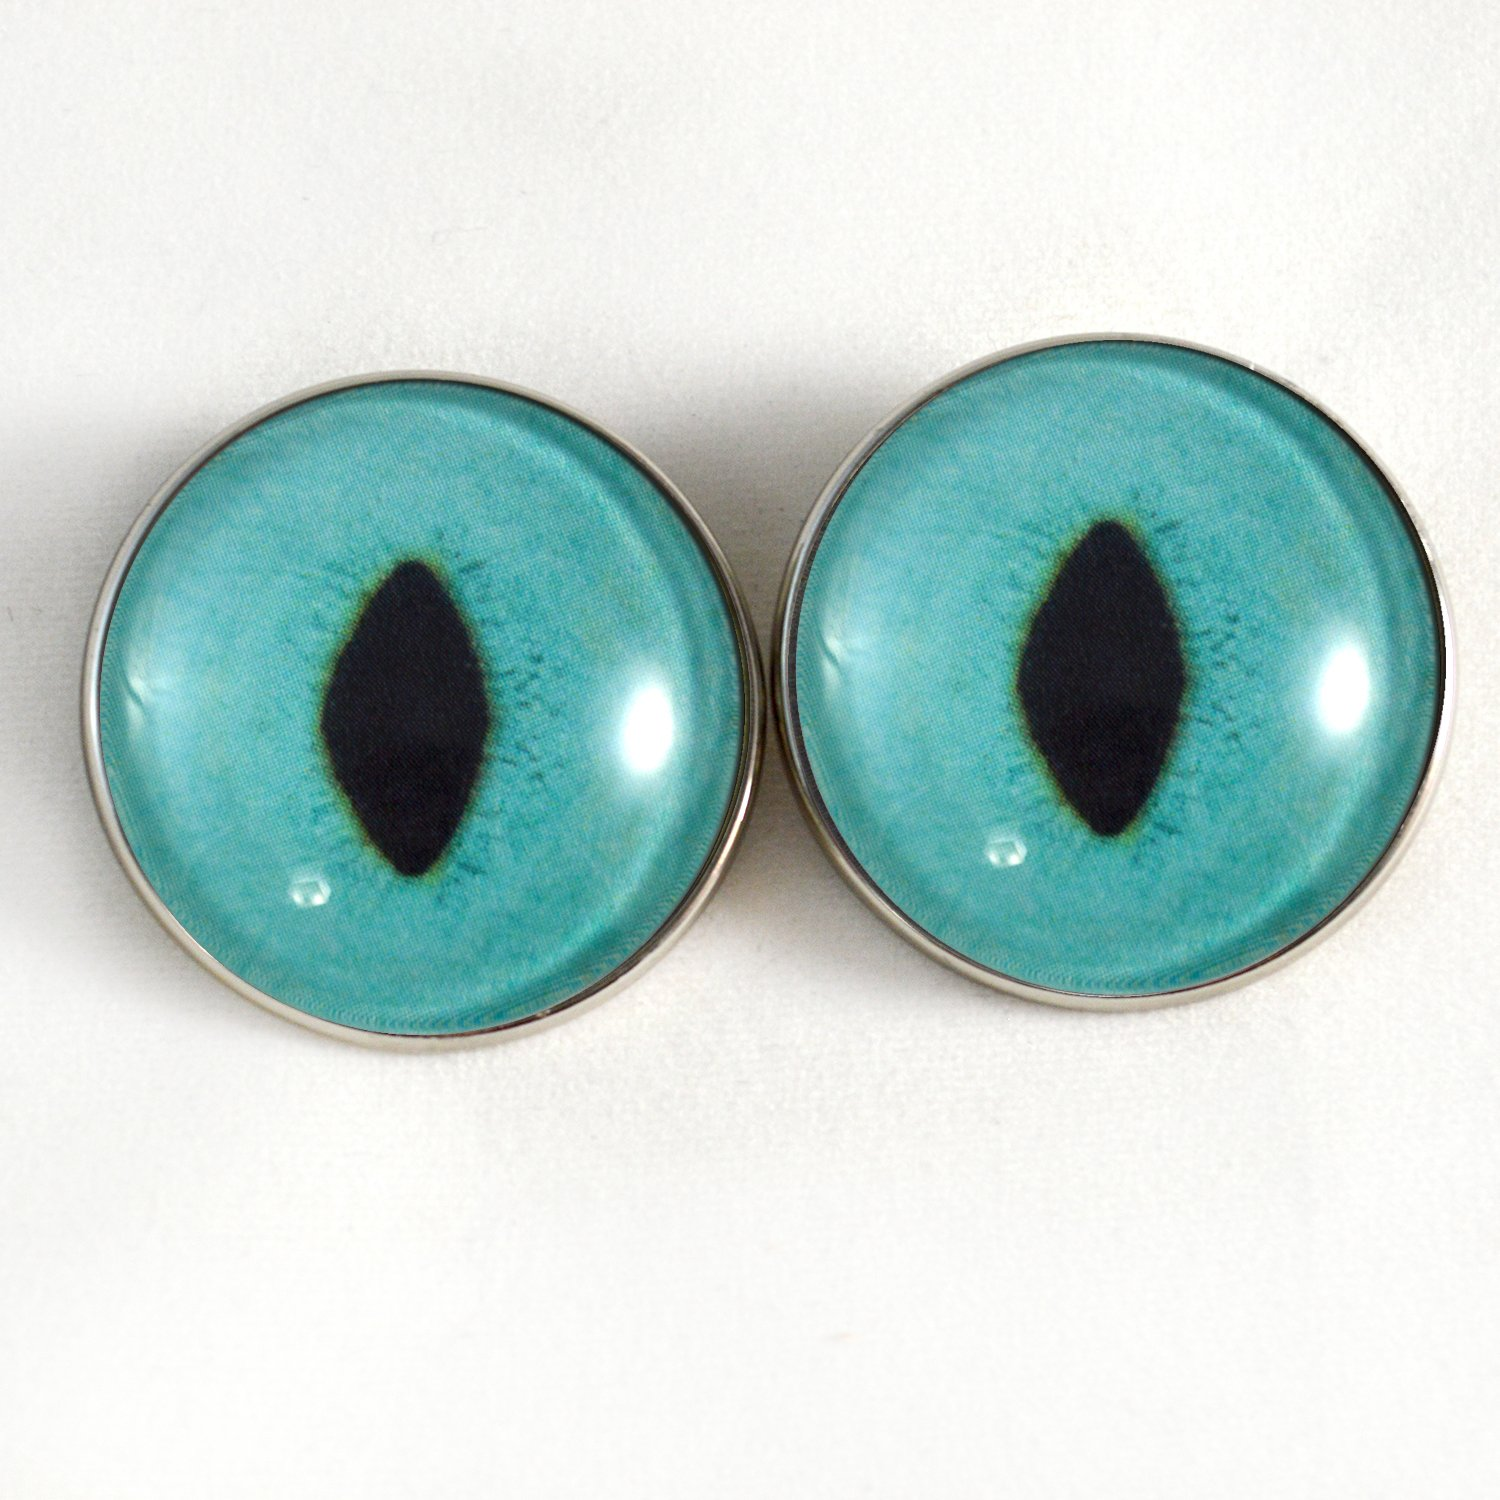 Bright Turquoise Cat Sew On Glass Eyes 30mm Buttons with Loop for Crocheted Doll Stuffed Animal Soft Sculptures or Jewelry Making Crafts Set of 2